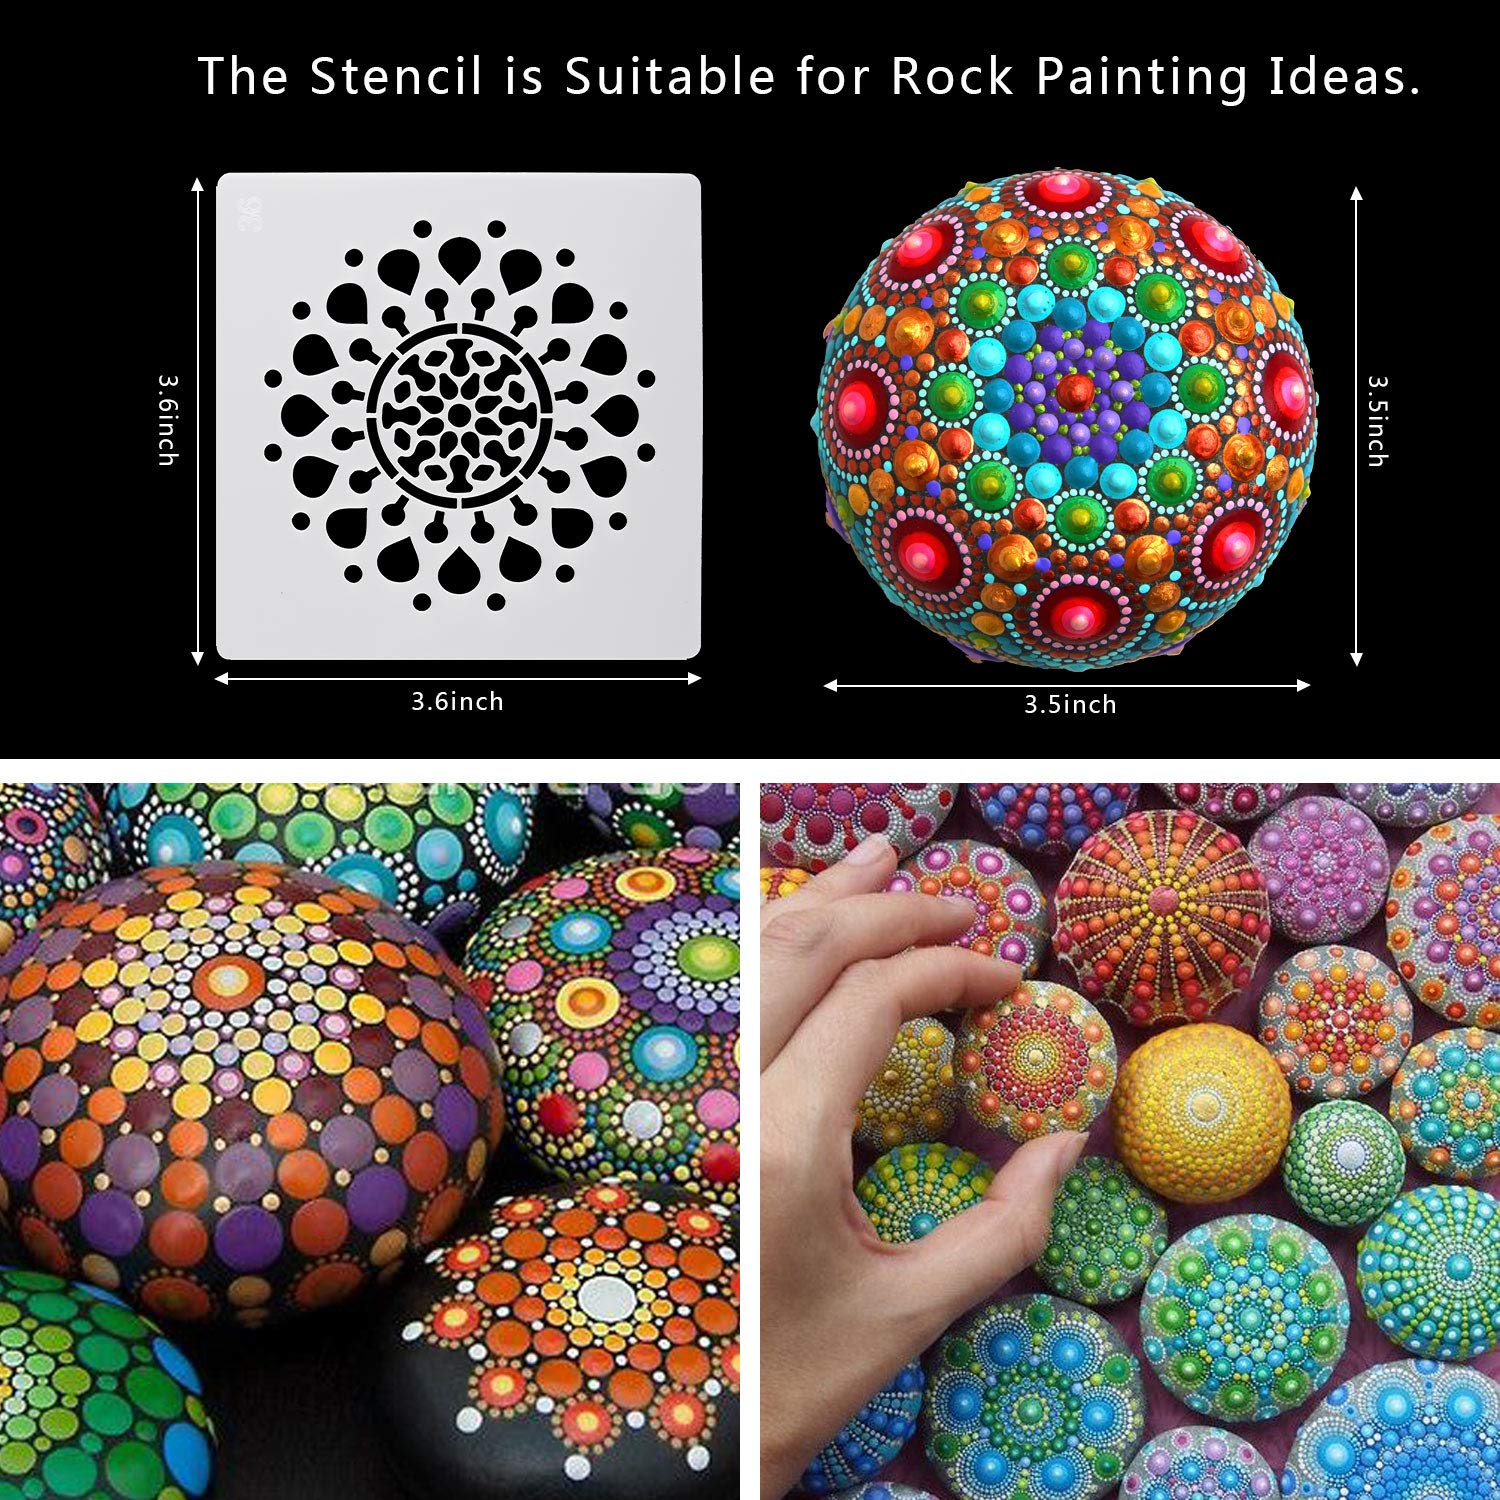 Home Painting 3.5 x 3.5 inch Whaline 56 Patterns Mandala Dot Painting Templates Floral Stencils Template Tools Set for Art Project Walls Art Furniture Floor Tiles Decor and Stone Rock